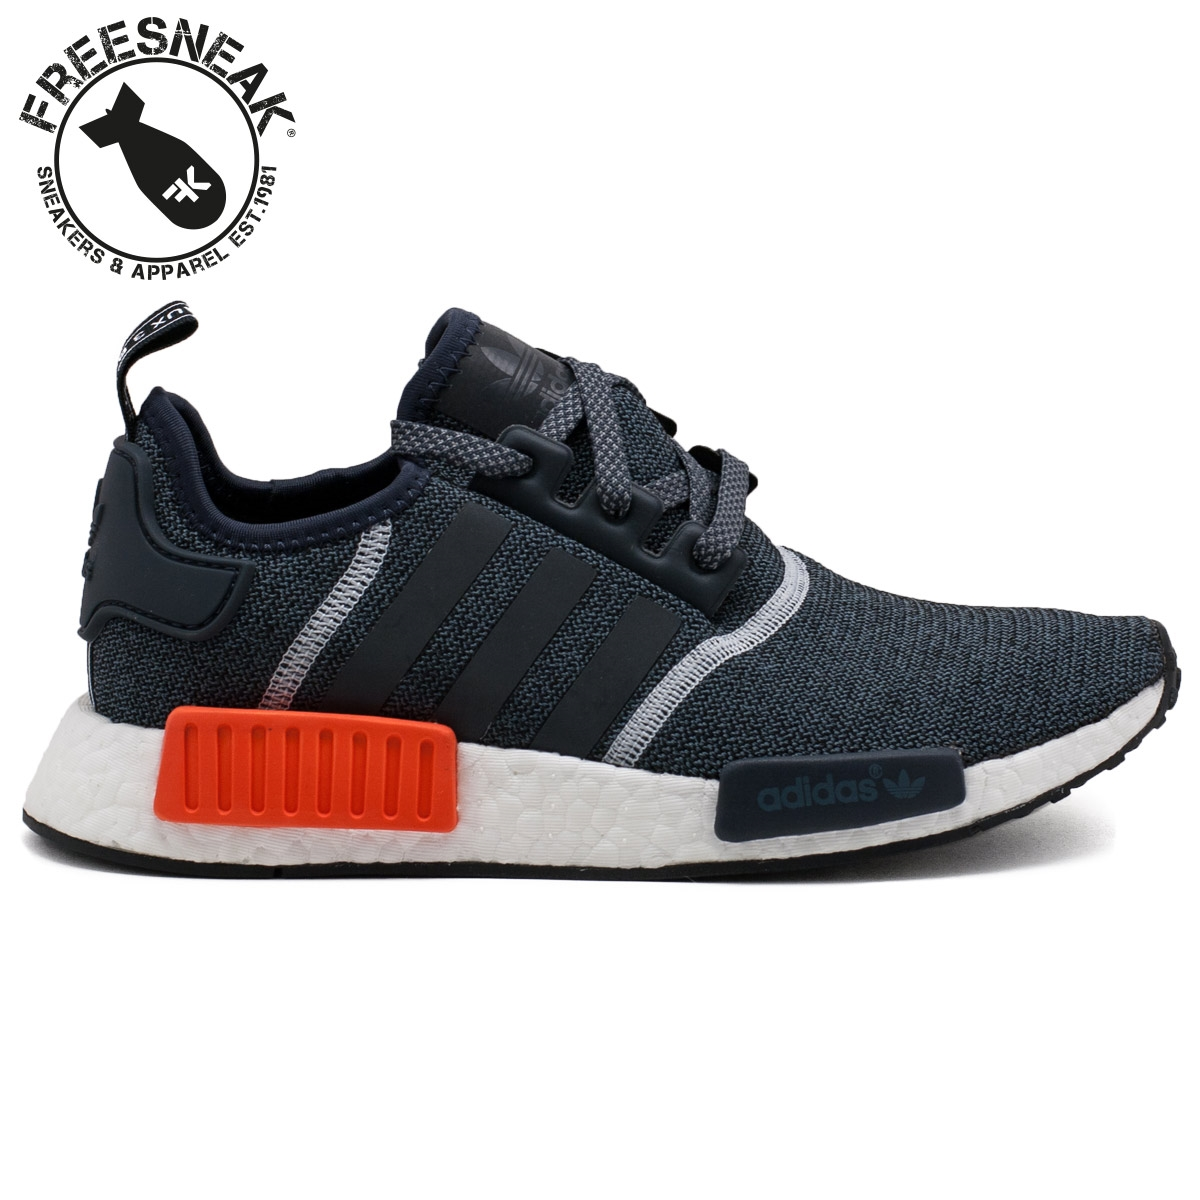 adidas nmd scuro